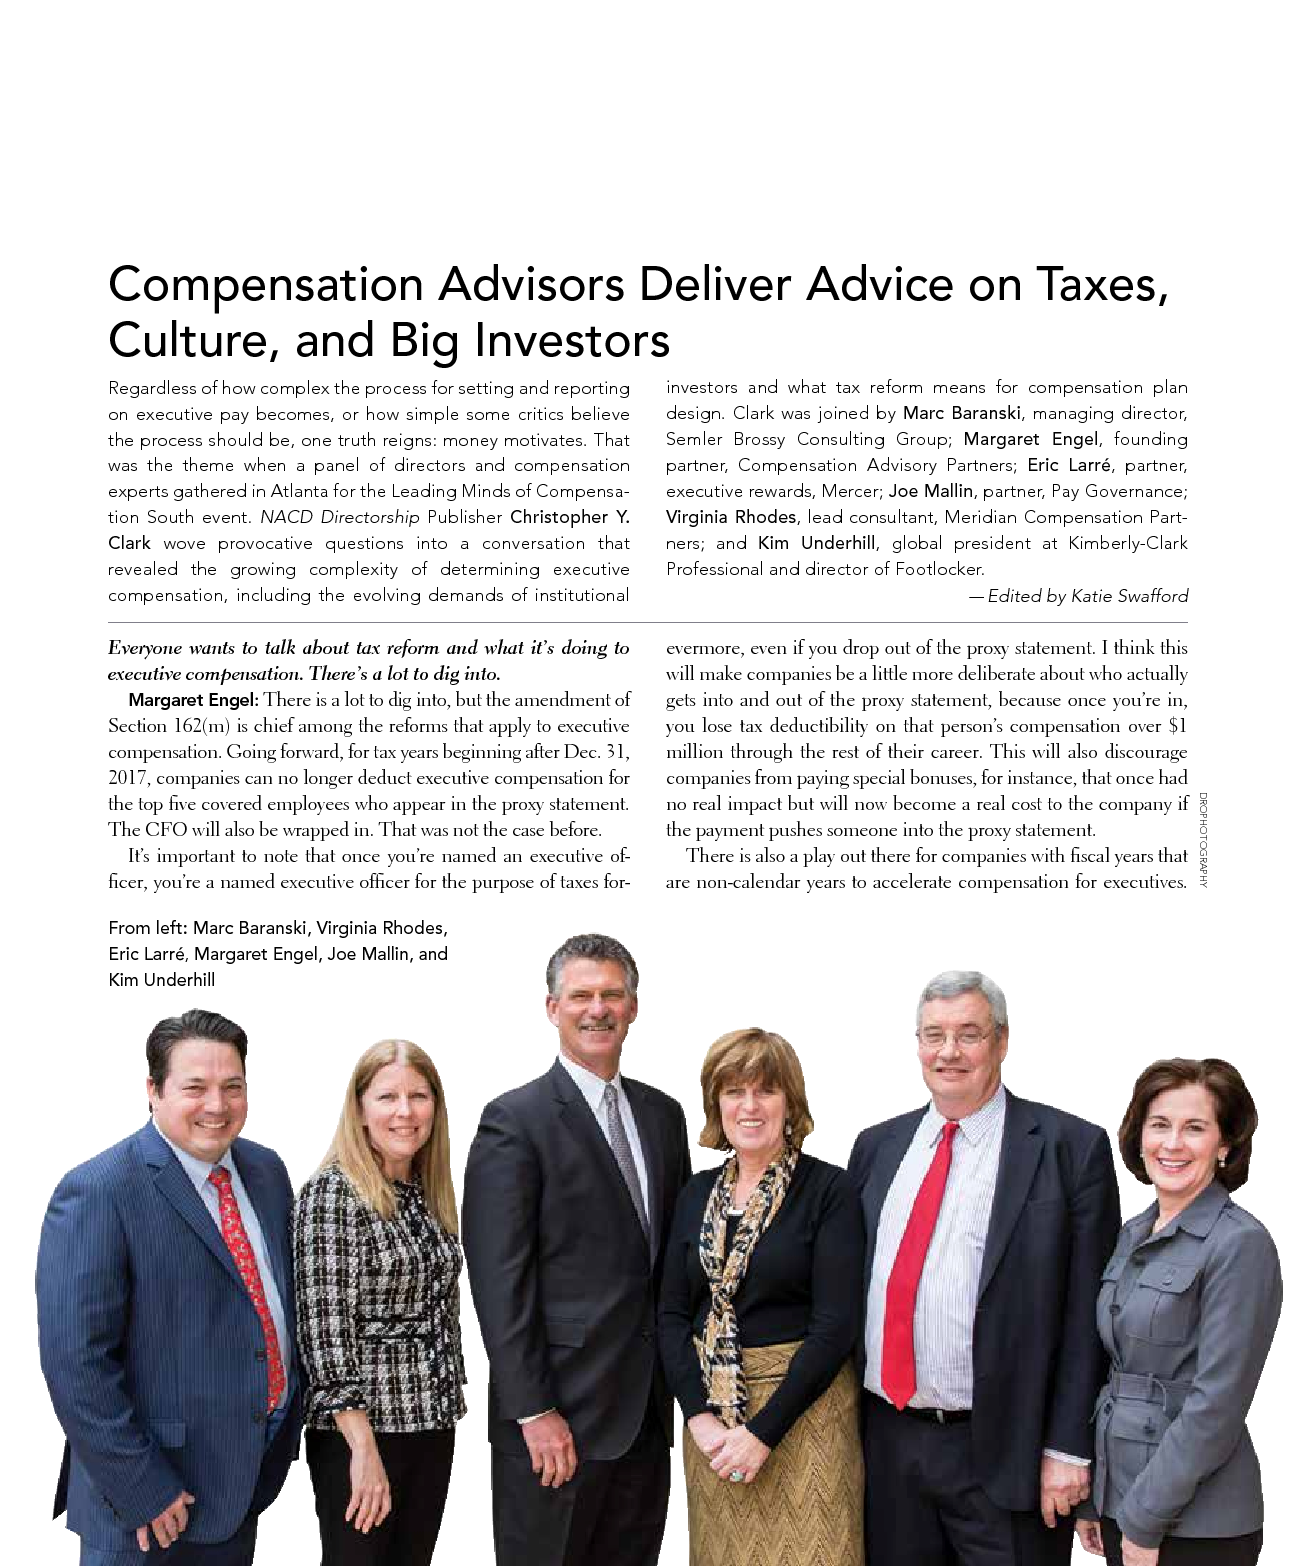 Compensation Advisors Deliver Advice on Taxes, Culture, and Big Investors (PDF)